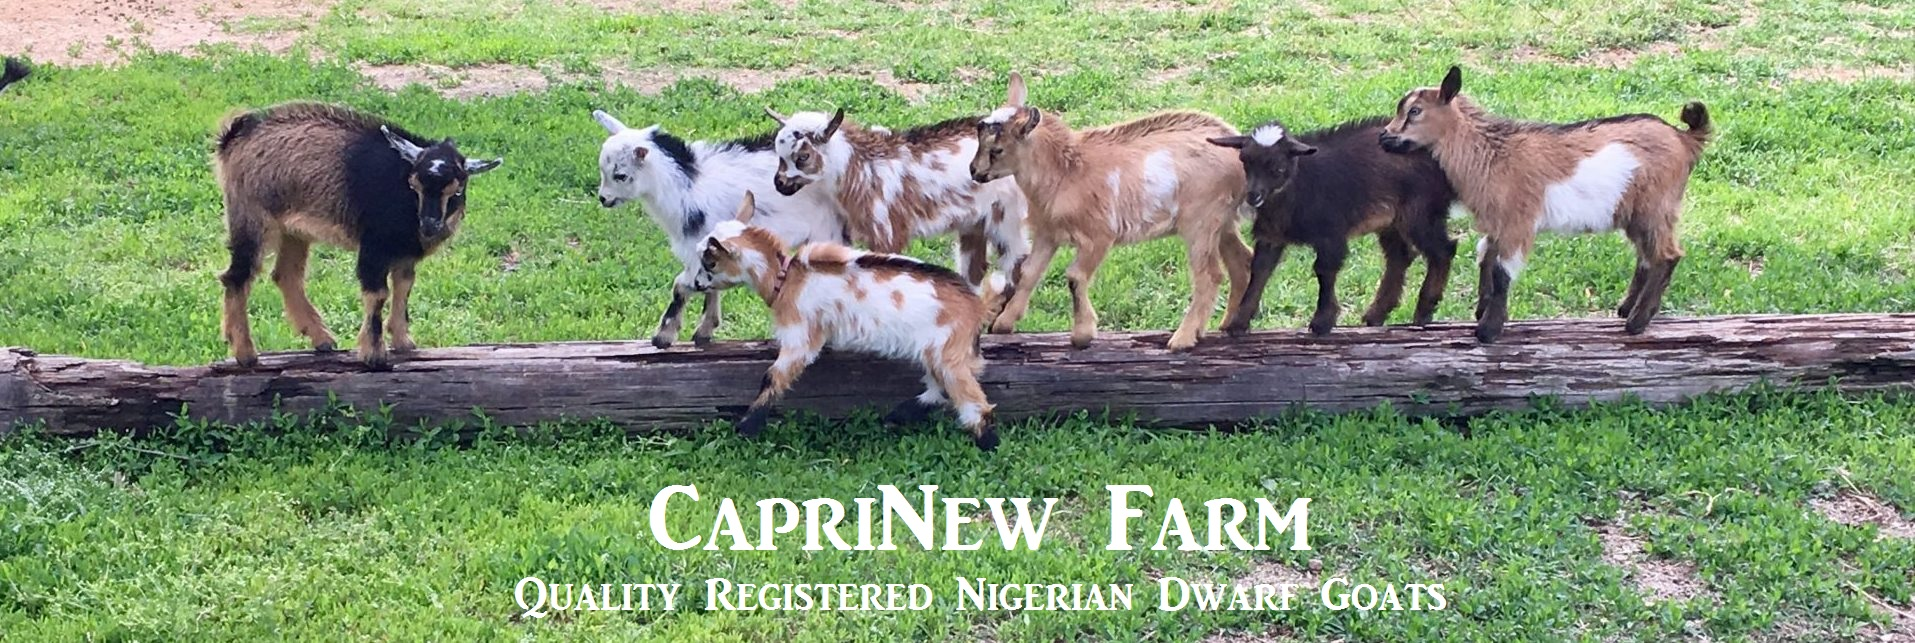 Header pic 3, CapriNew Farm